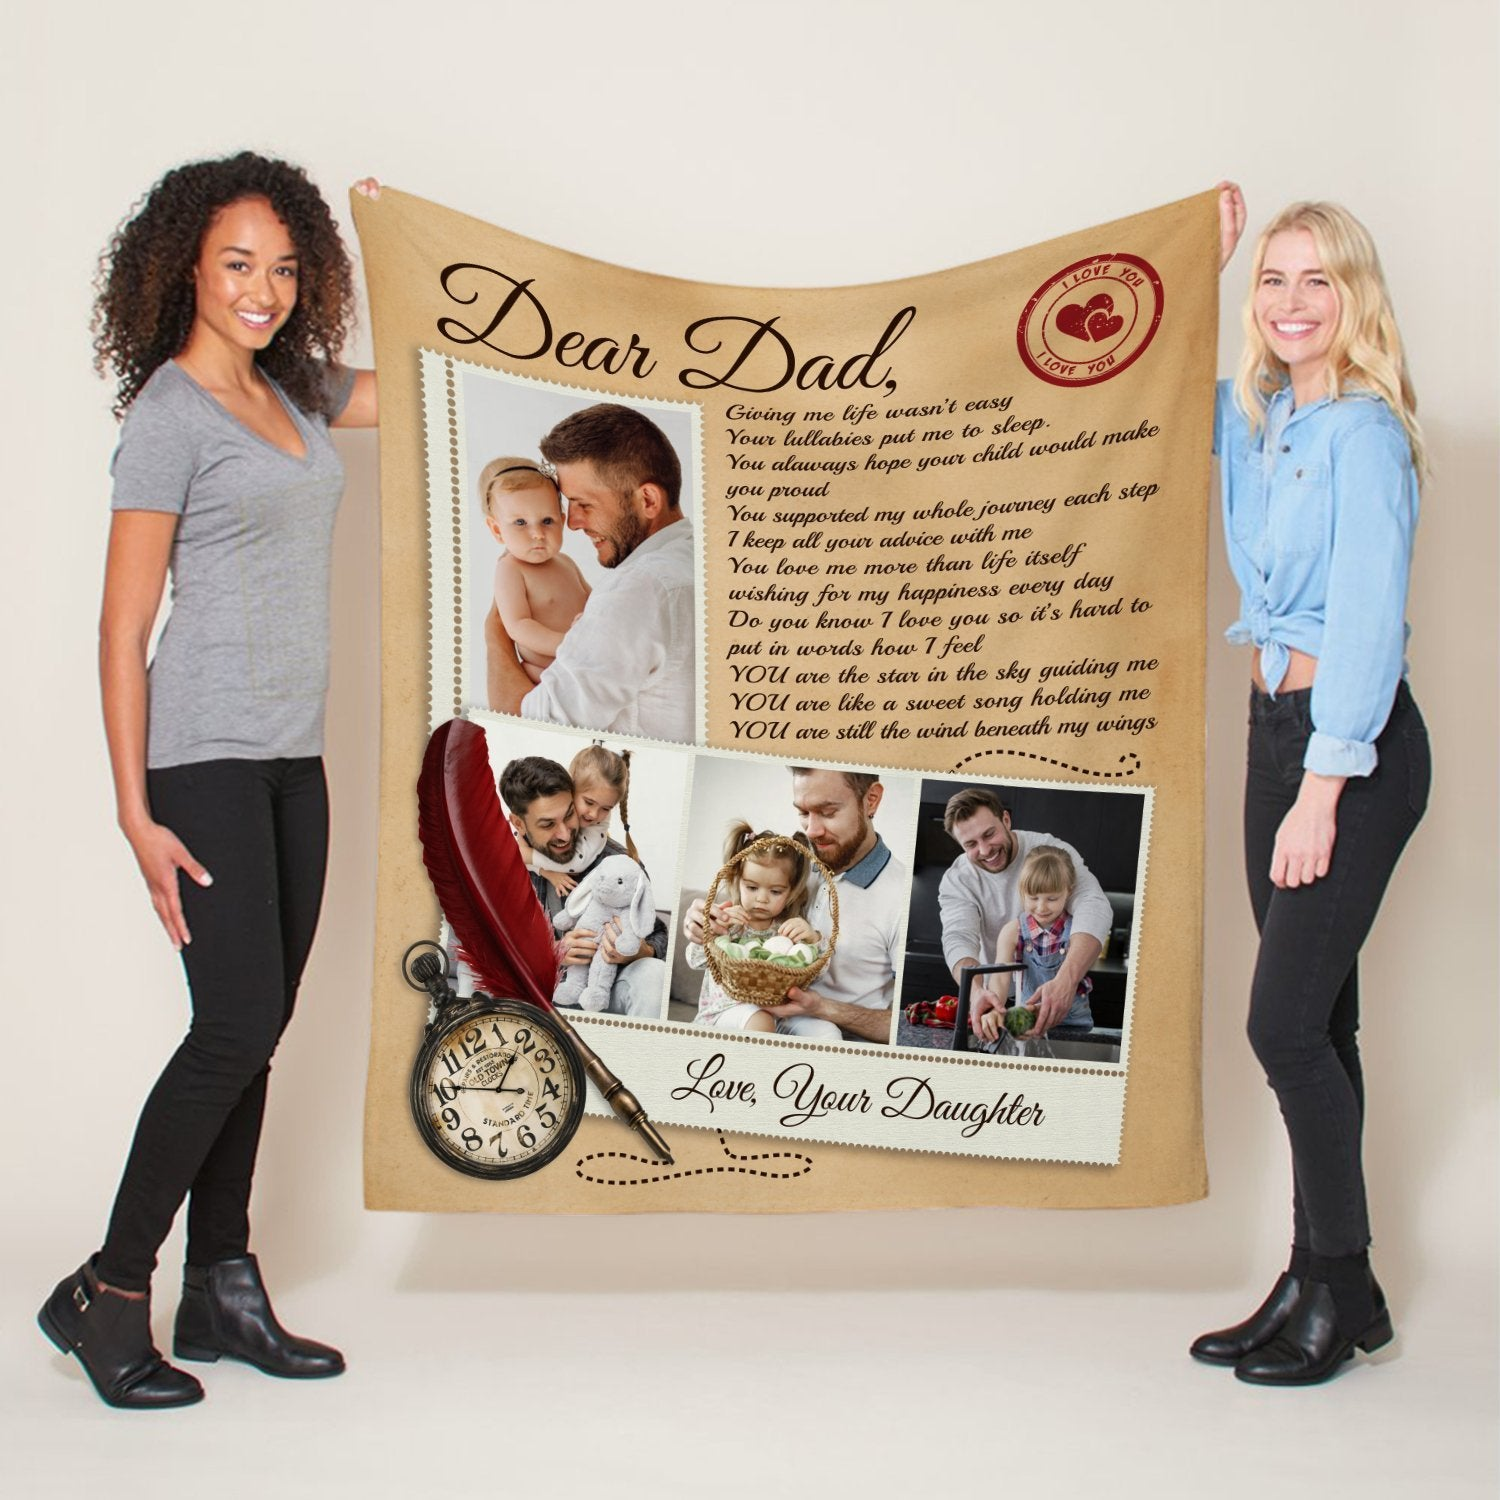 """A Love Letter Blanket is also a good gift suggestion for father's day. Imaging that he will get warm every single night with your heartfelt letter blanket. How meaningful it is! Let this blanket whisper silently """"love you dad' in his dream at night."""